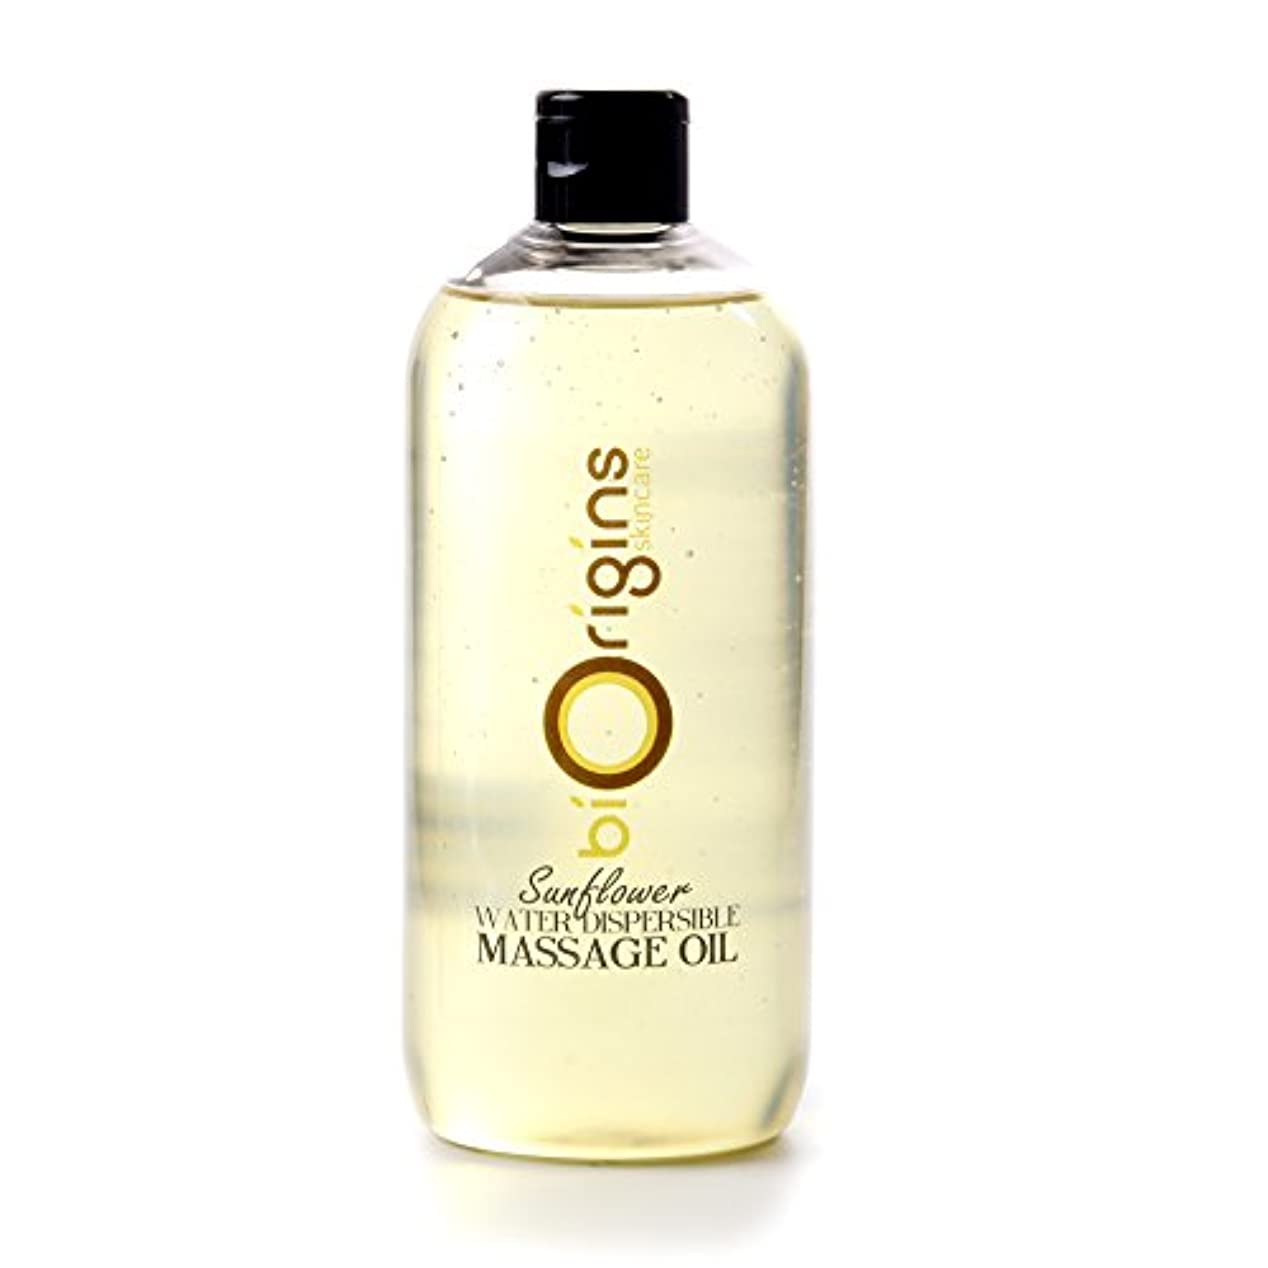 ロシアミッション写真撮影Sunflower Water Dispersible Massage Oil - 1 Litre - 100% Pure